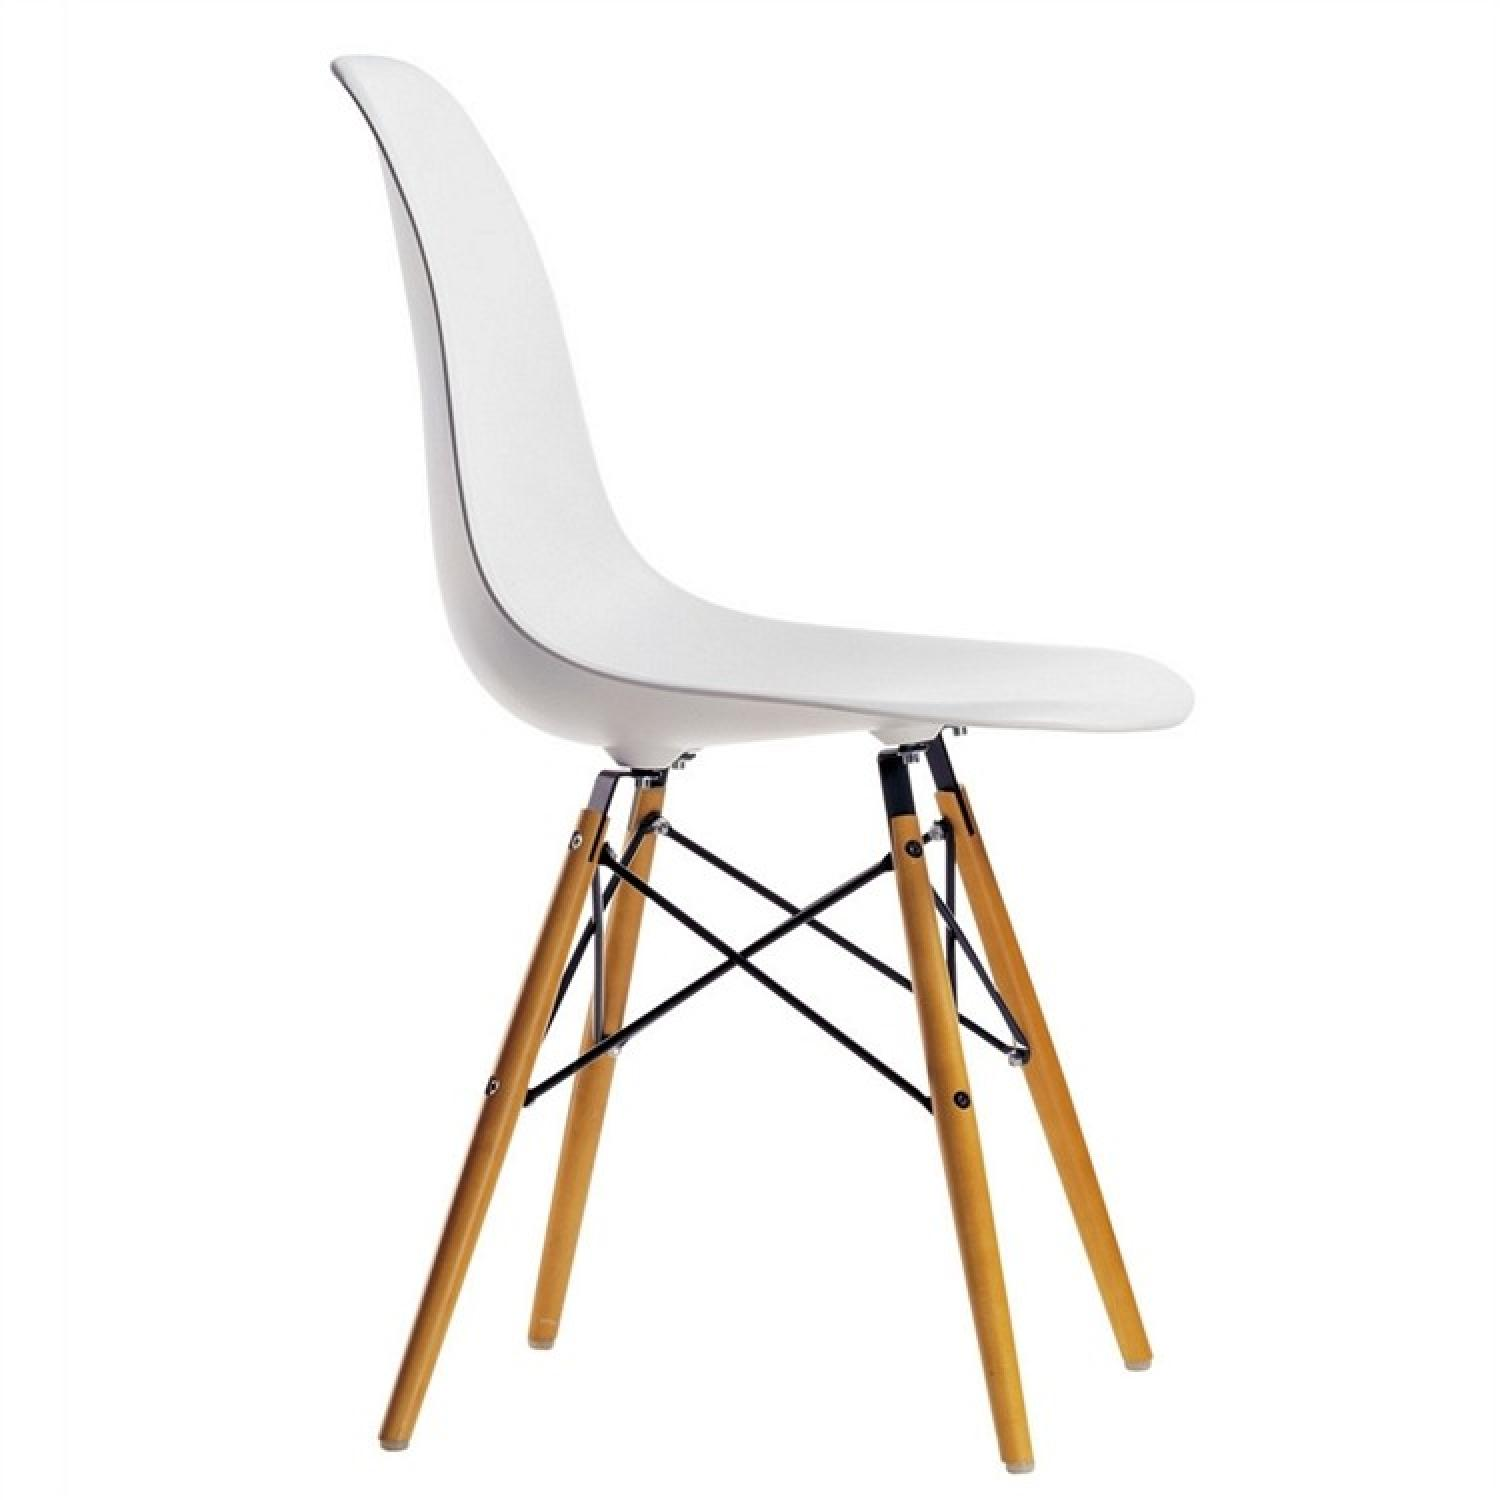 Classic Retro Style White Dining Chairs w/ Wood Legs - image-1